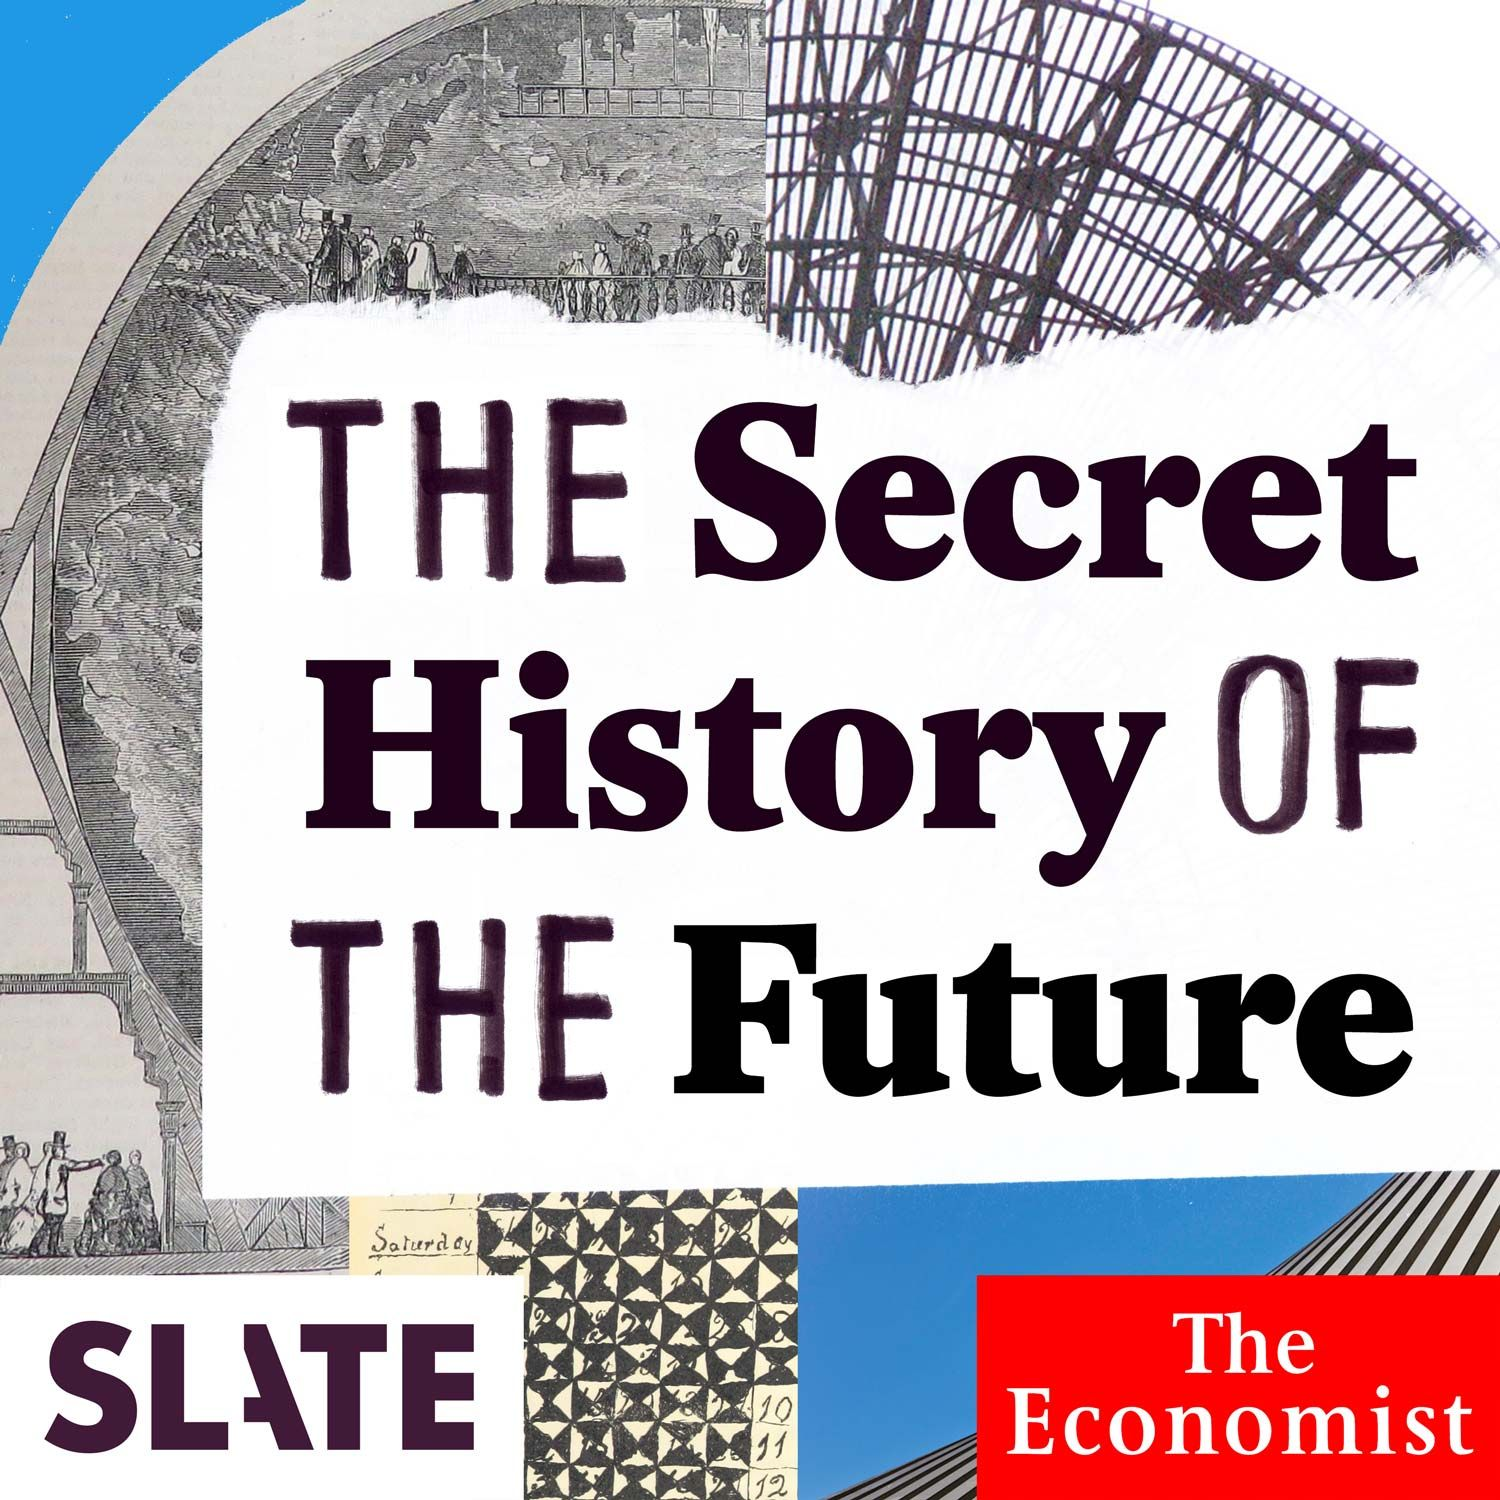 The Secret History of the Future From Zero to Selfie